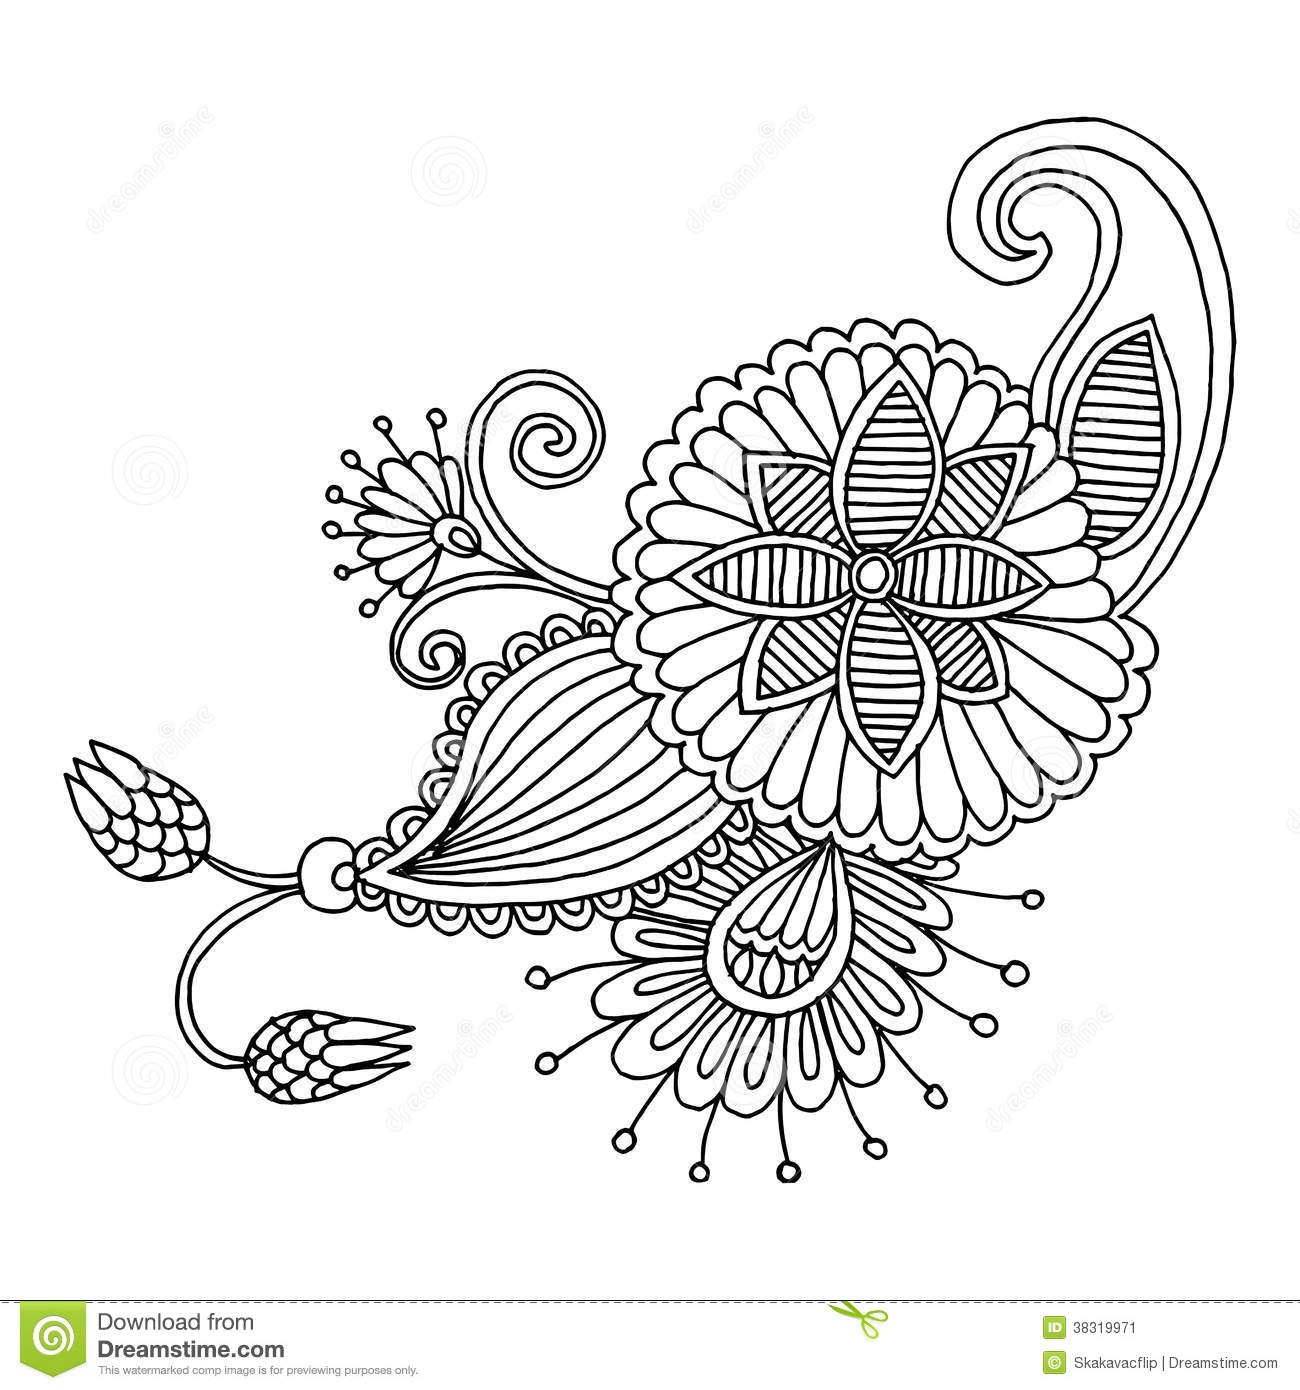 Embroidery pattern stock vector. Illustration of flores - 38319971